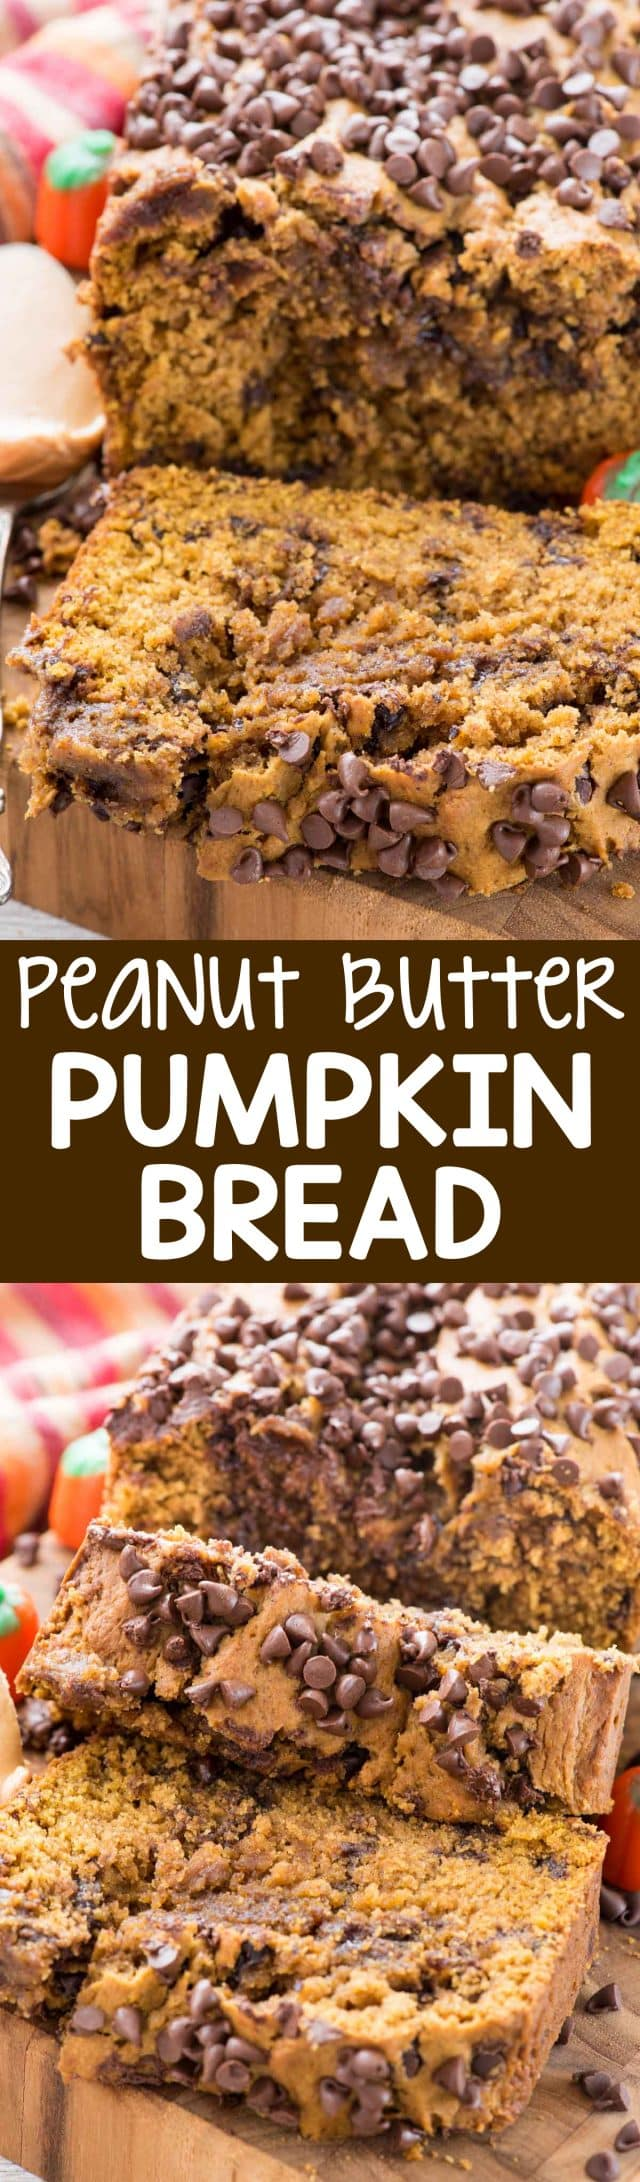 Peanut Butter Pumpkin Bread is an easy pumpkin bread recipe full of peanut butter. The flavor combination is perfect for fall and this is a great breakfast or dessert! The chocolate makes it perfect.